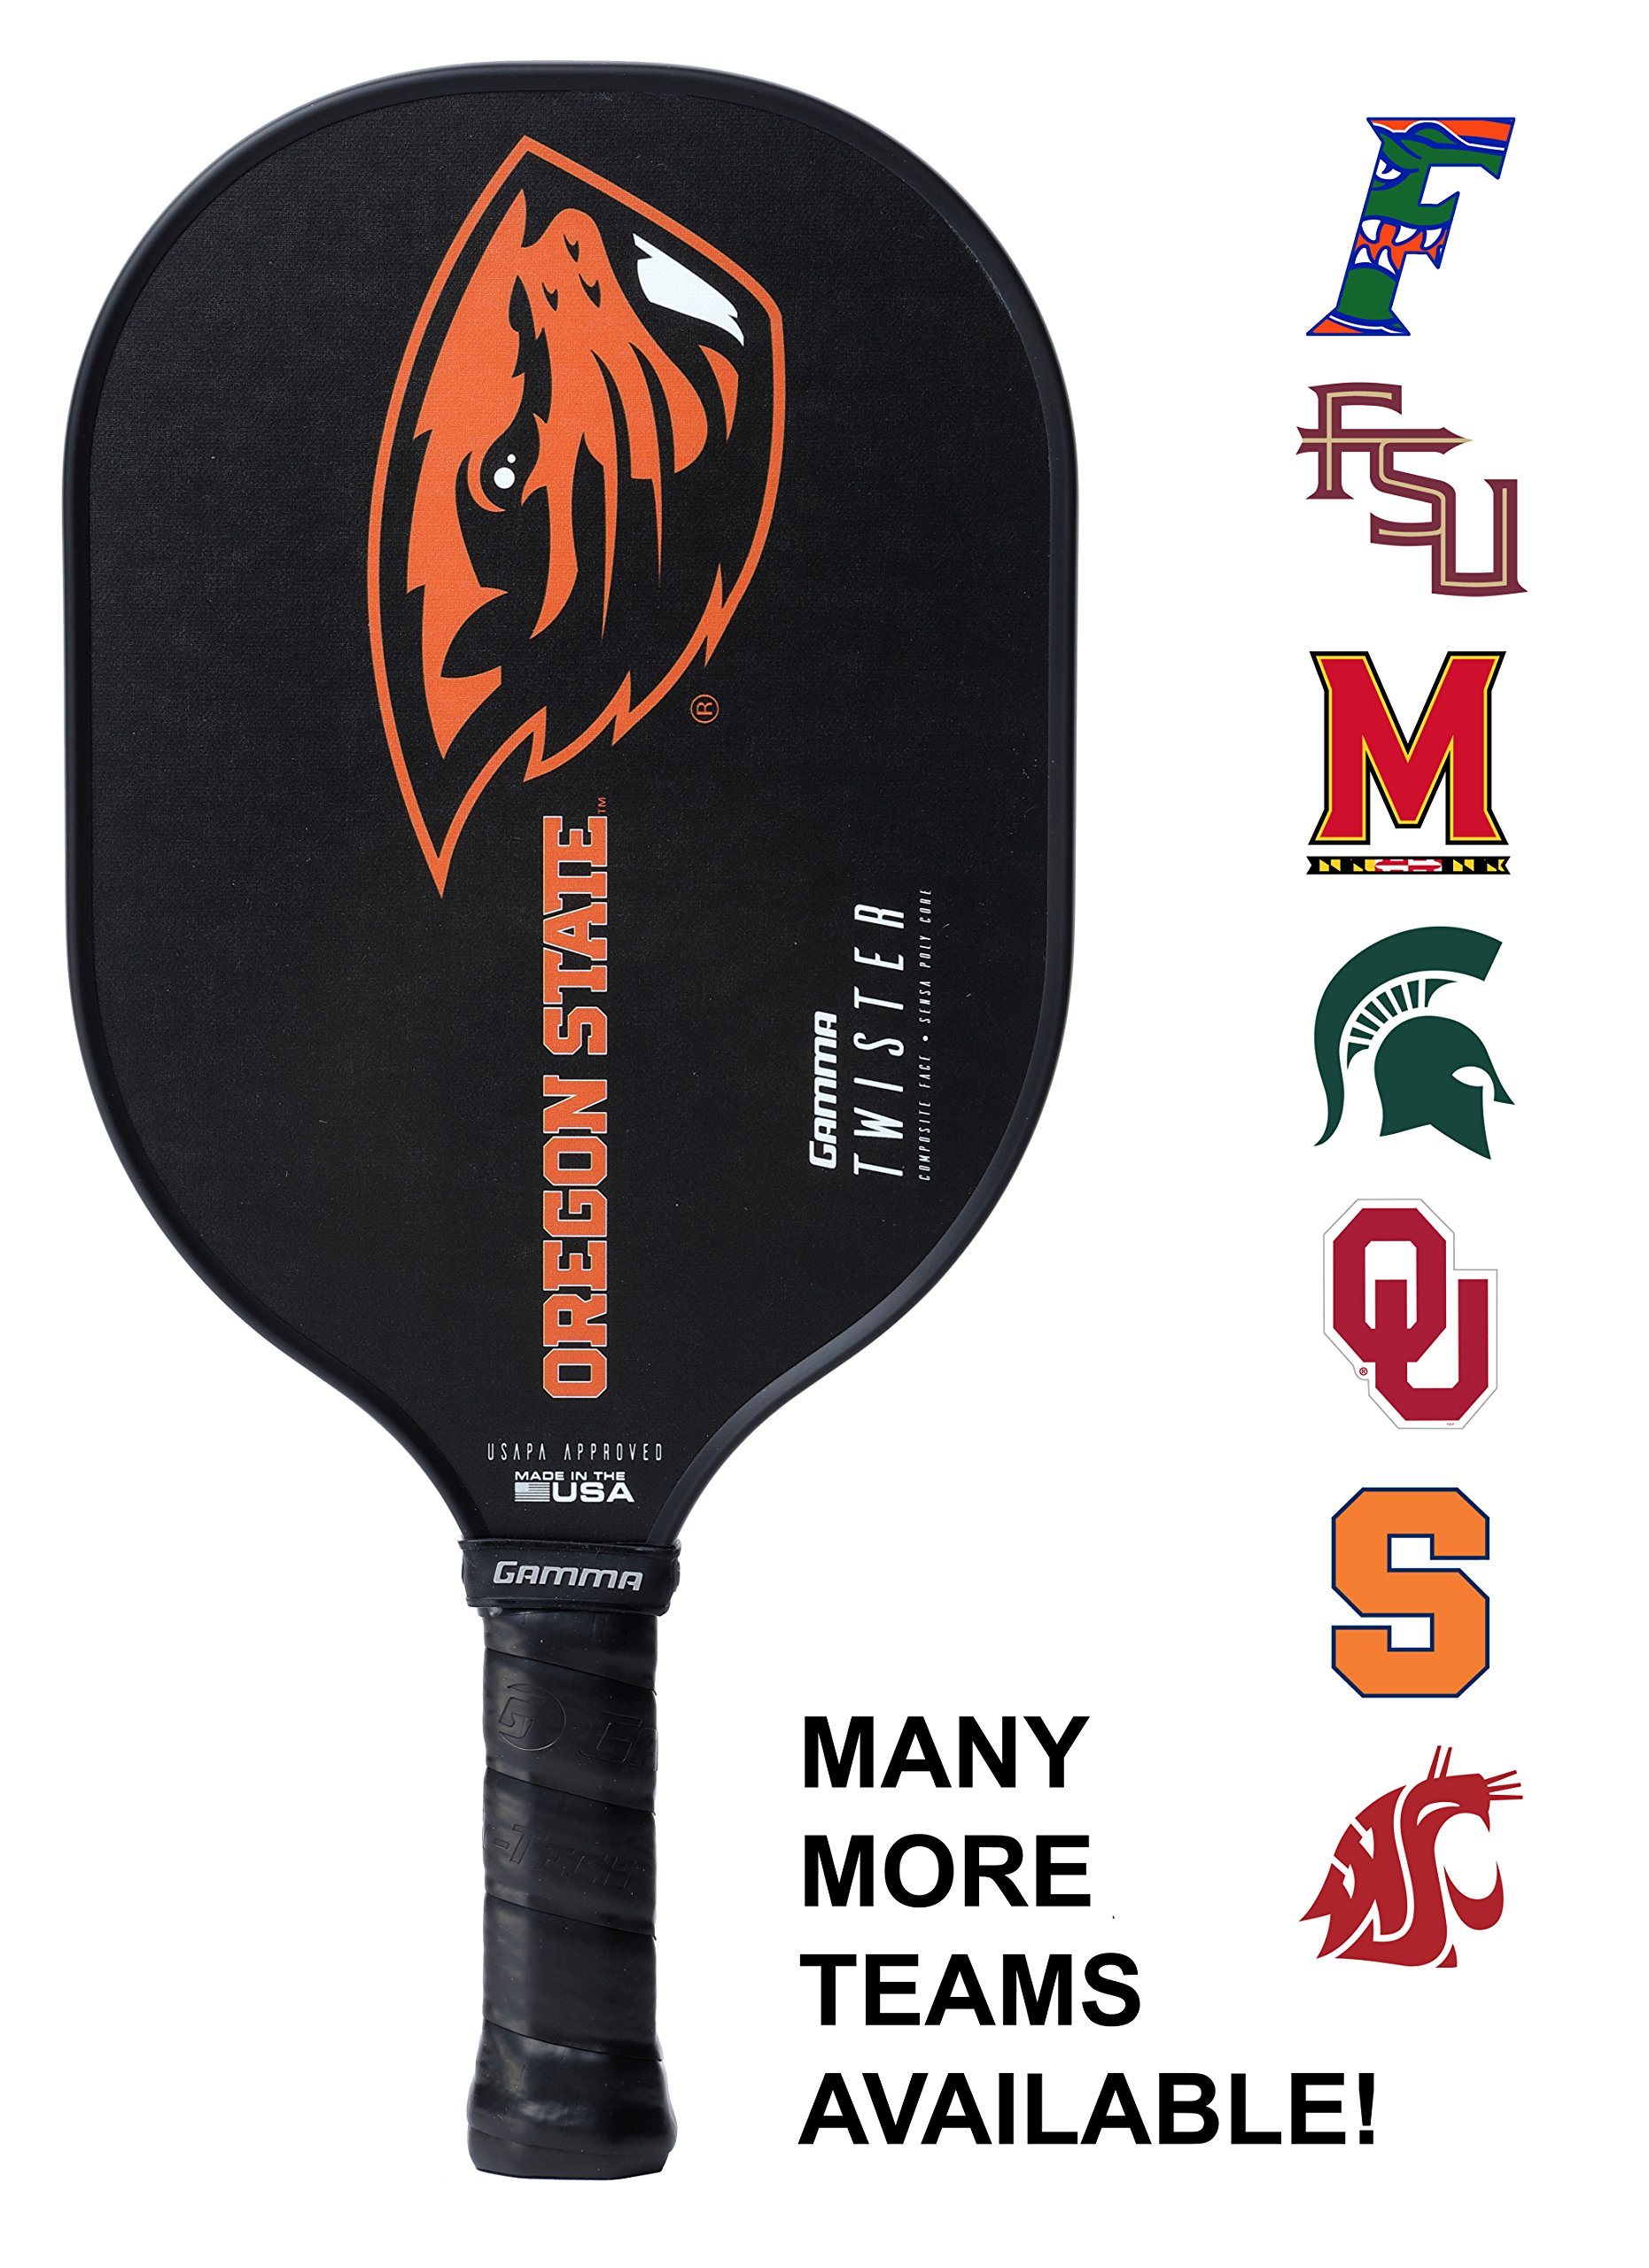 Gamma Collegiate Twister Composite Pickleball Paddle: Pickle Ball Paddles for Indoor & Outdoor Play - USAPA Approved Racquet for Adults & Kids - Oregon State Beavers